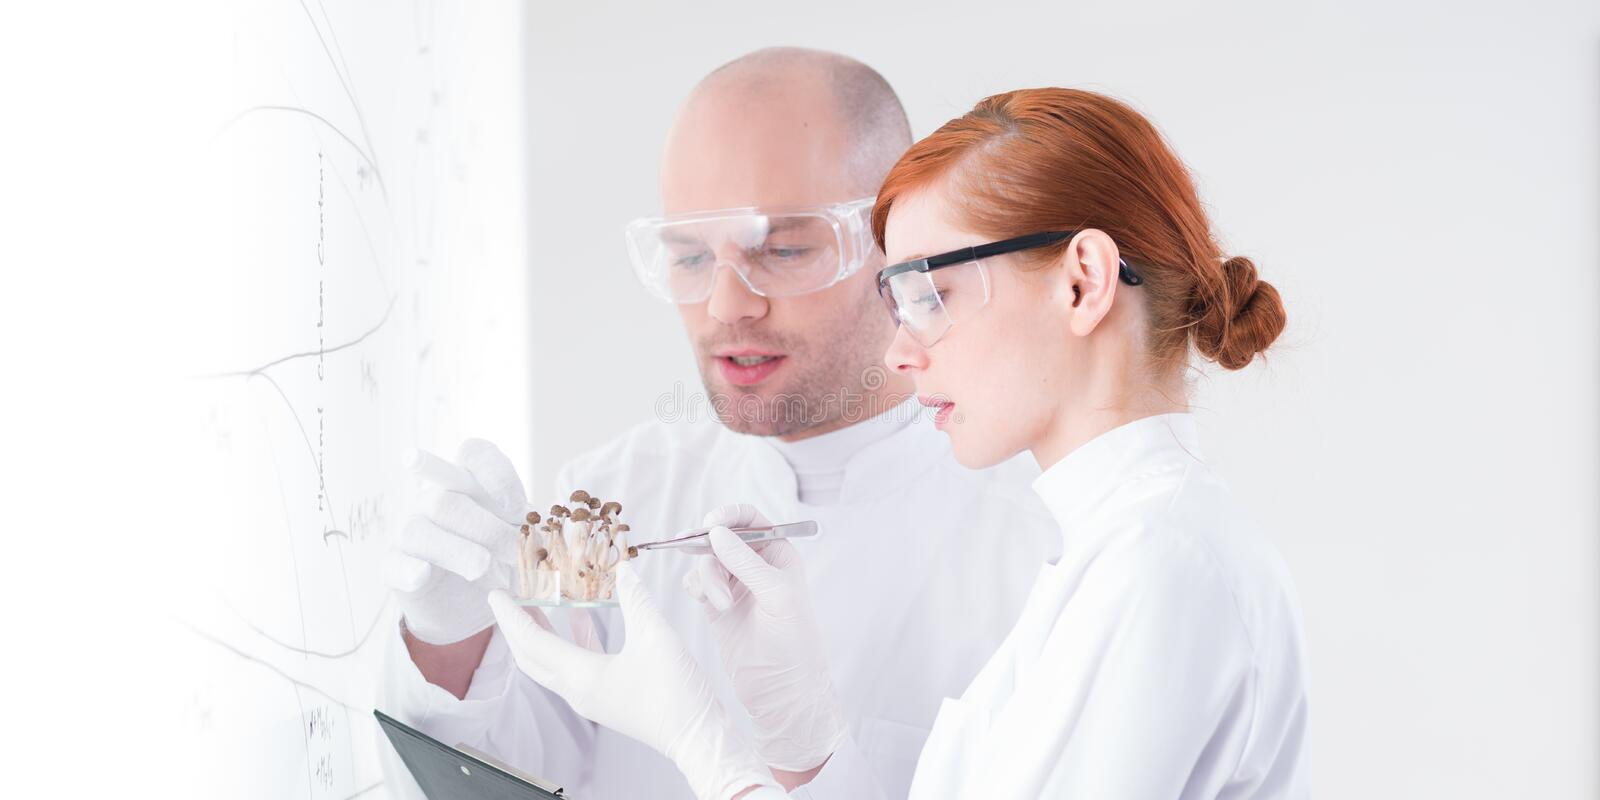 Download Scientists Analyzing Mushrooms Royalty Free Stock Photo - Image: 31258255